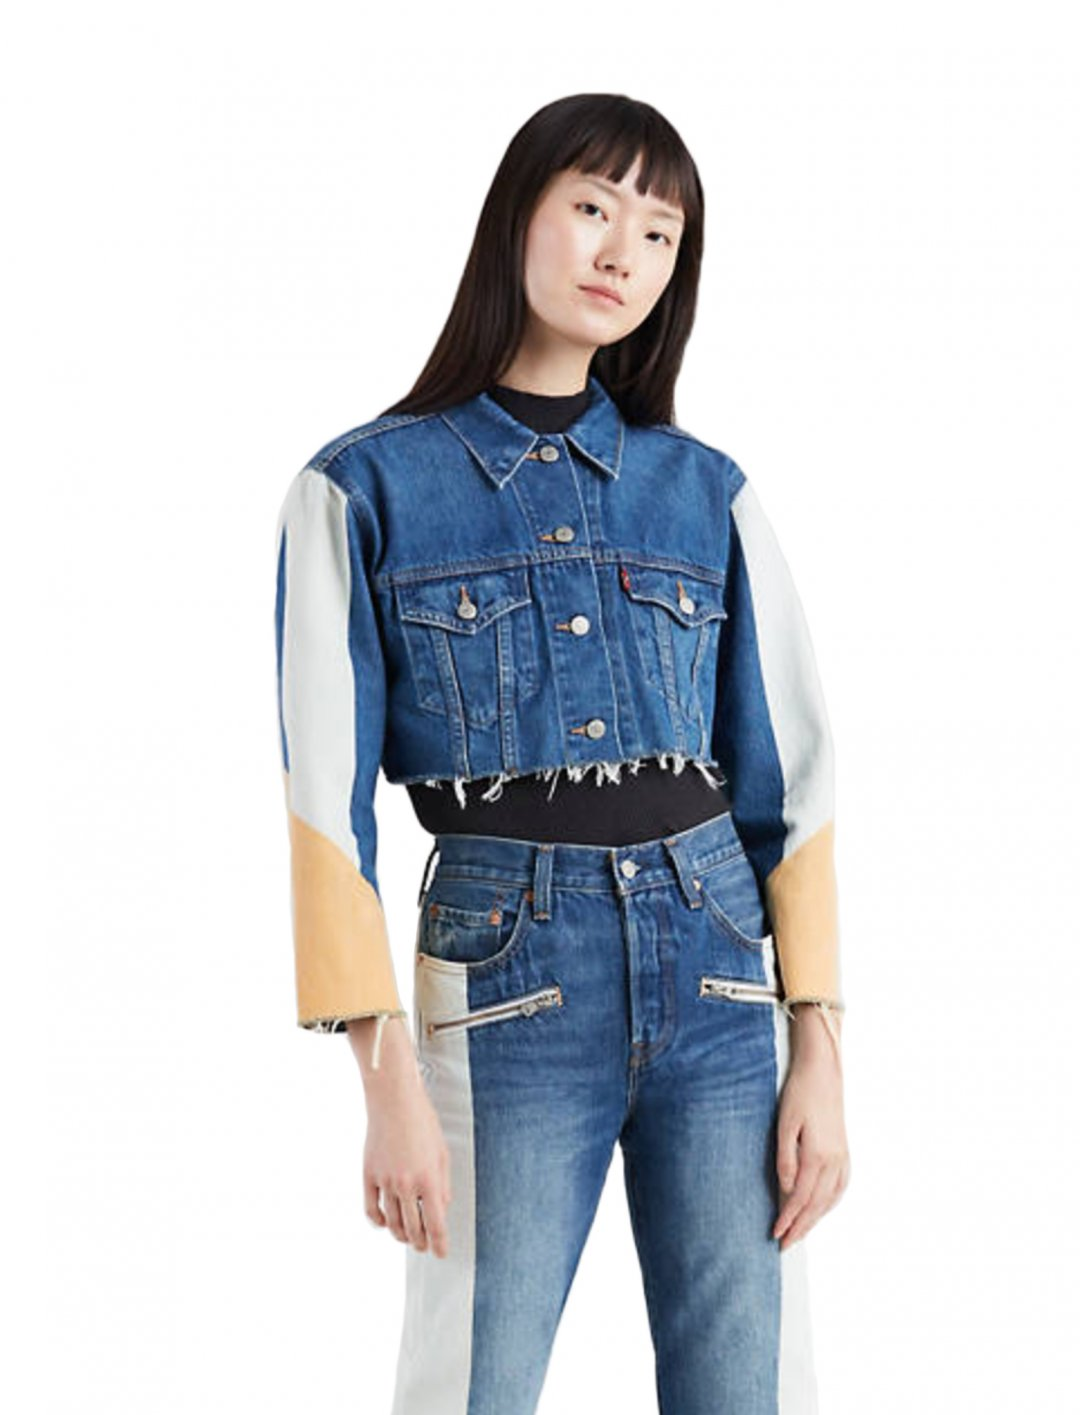 Mahalia's Cropped Denim Jacket Clothing Levi's